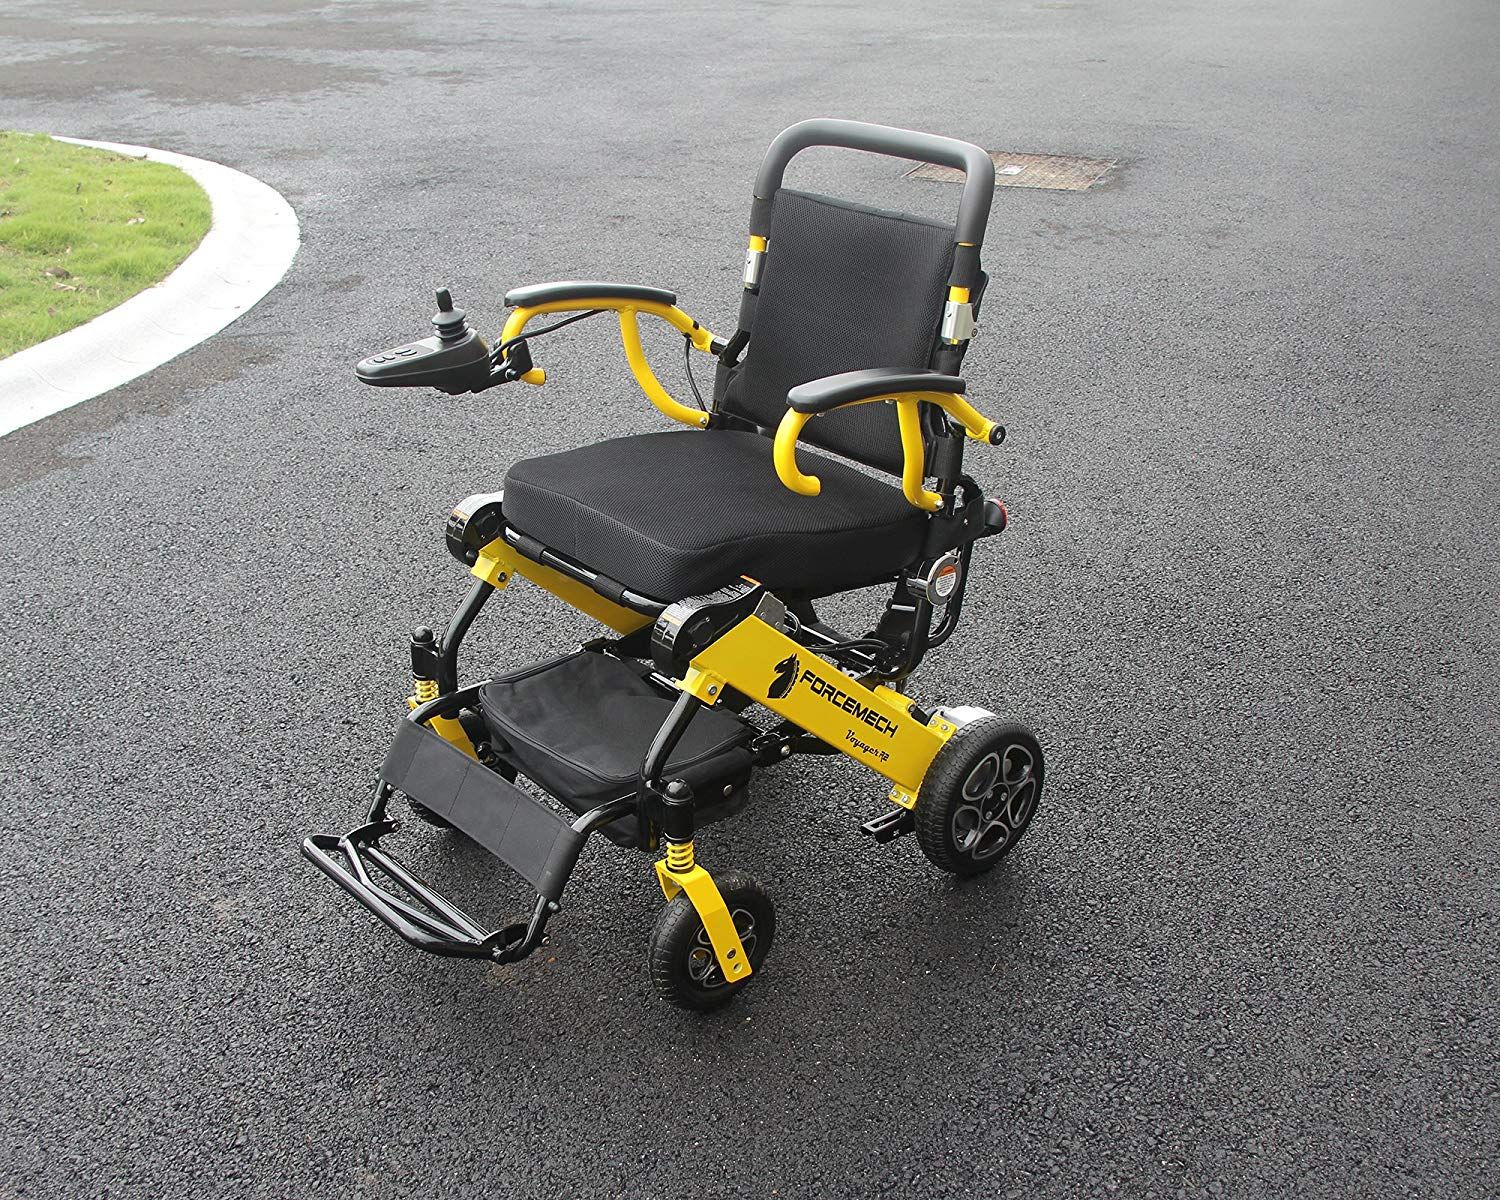 Forcemech Voyager Portable Wheelchair